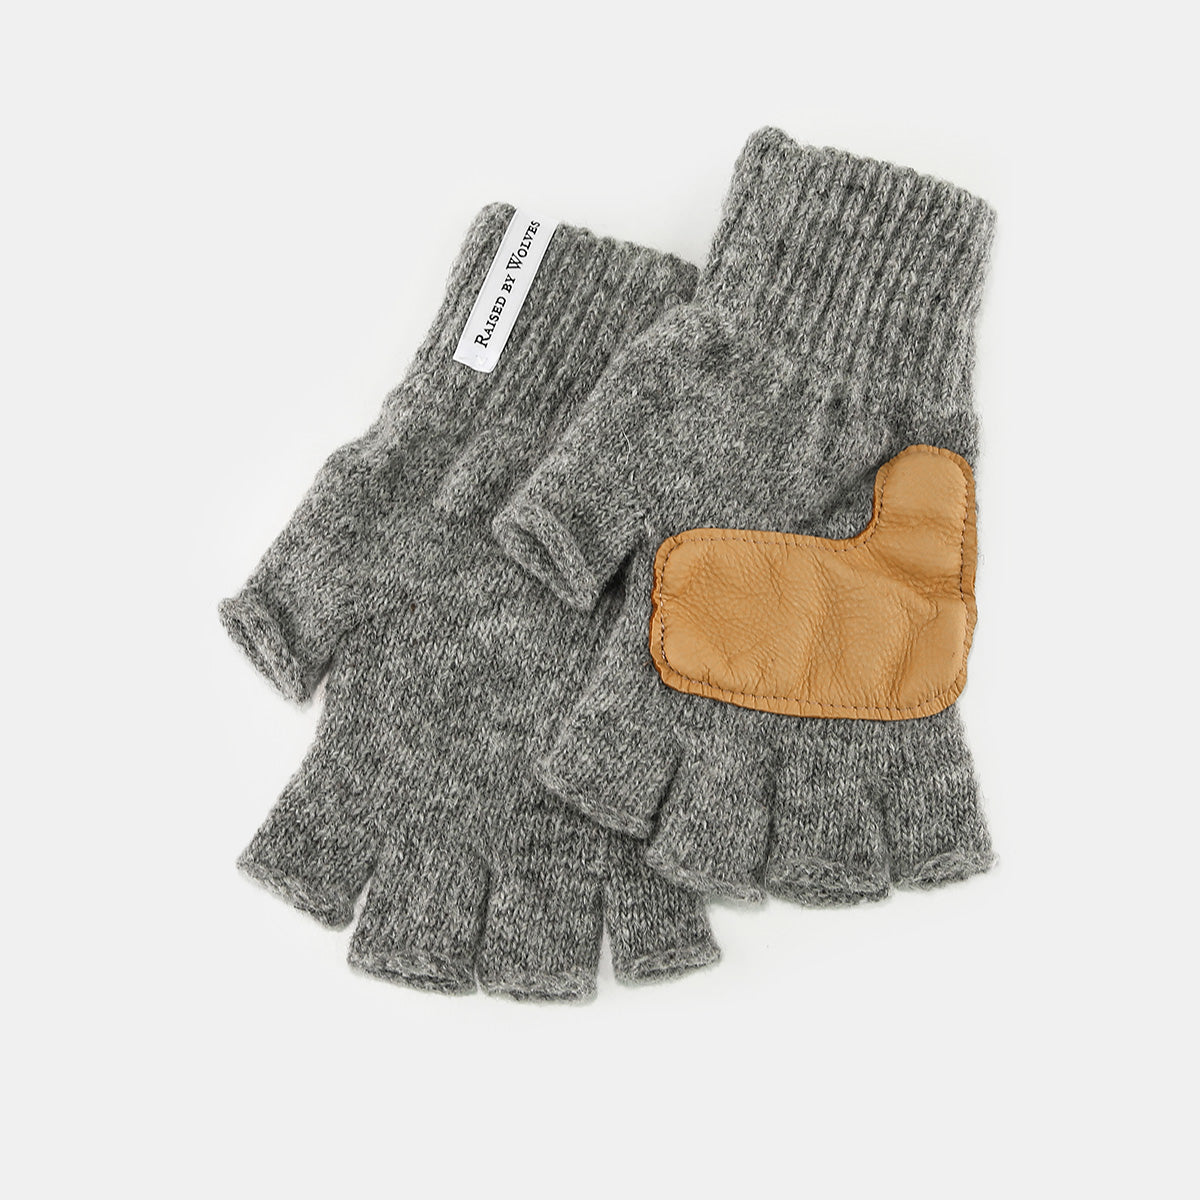 Raised by Wolves - Atwater Fingerless Gloves (Heather Grey)